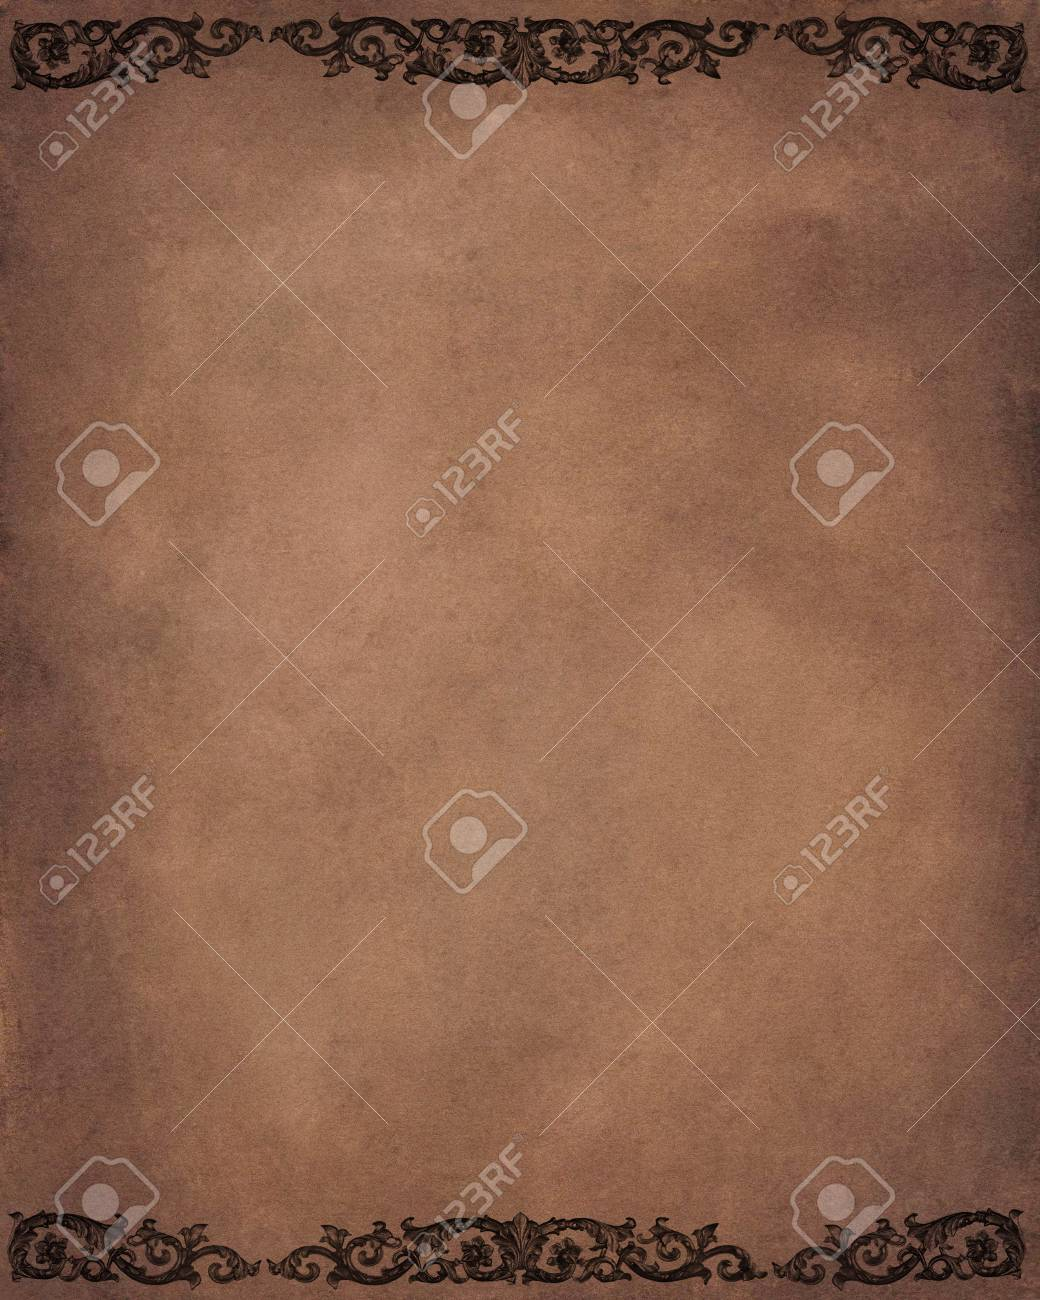 Vintage background with floral desing Stock Photo - 9481697